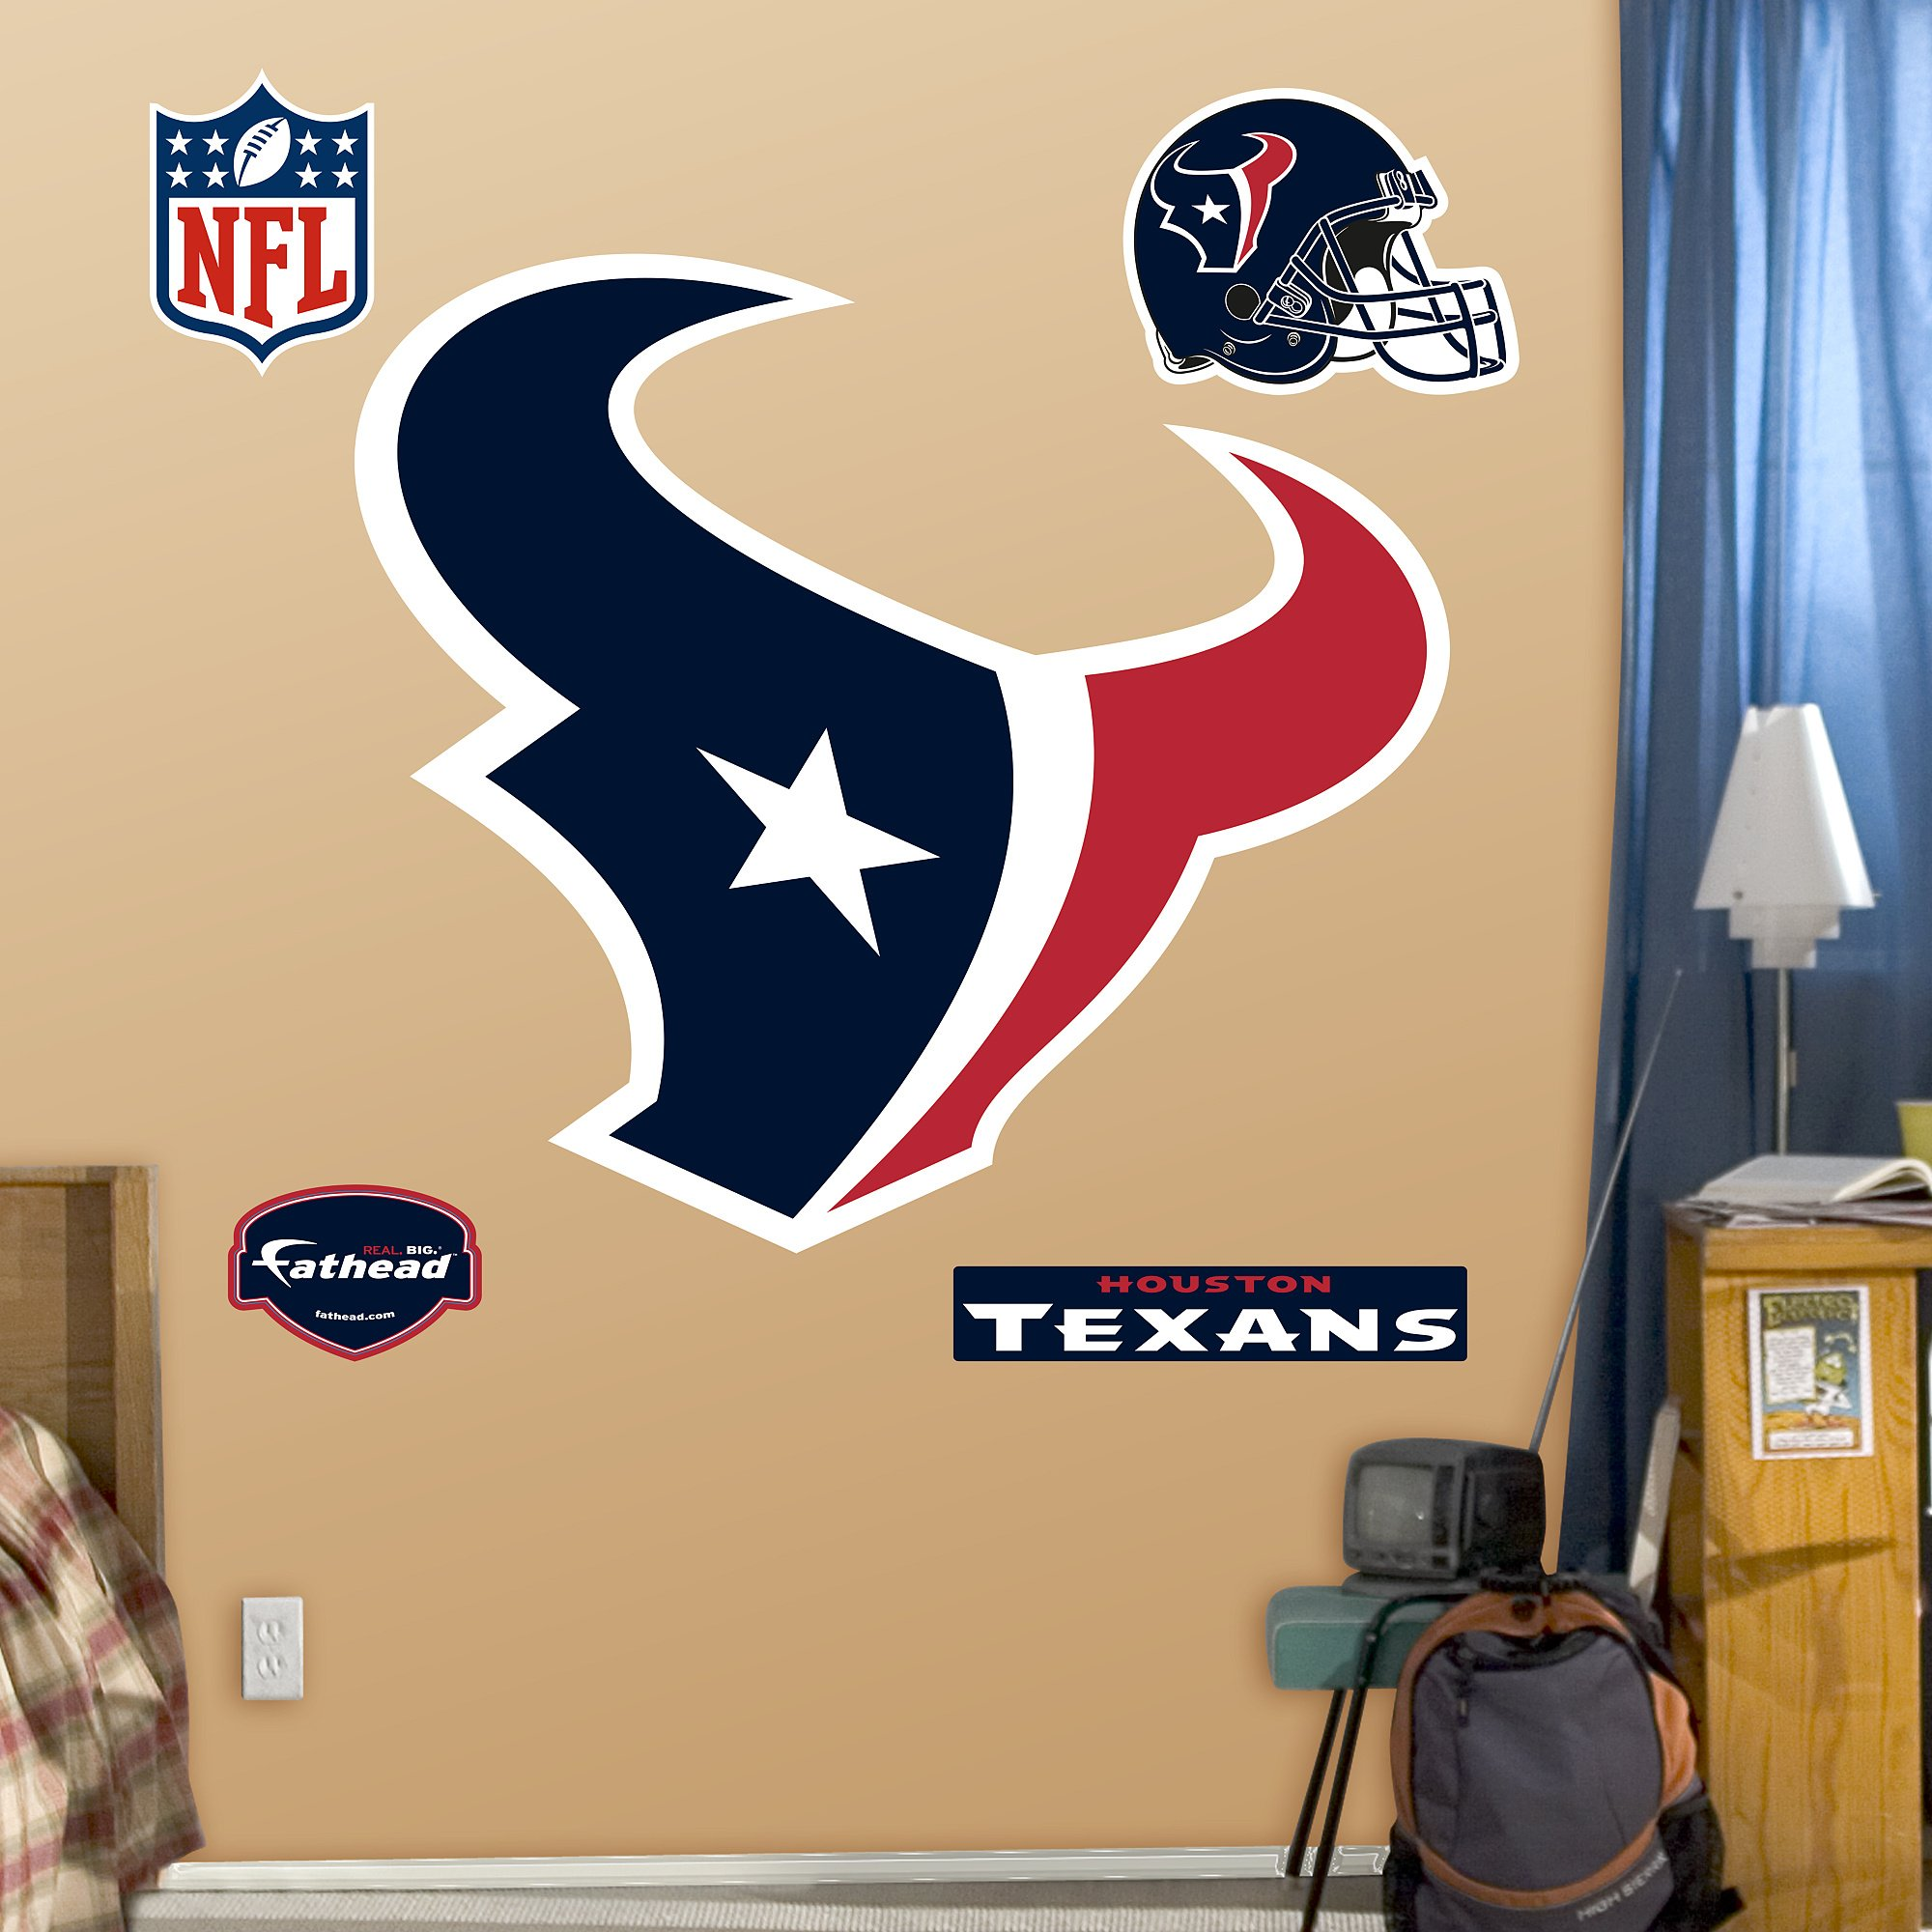 Fathead NFL Houston Texans Houston Texans: Logo - Giant Officially Licensed NFL Removable Wall Decal - 14-14015 by FATHEAD